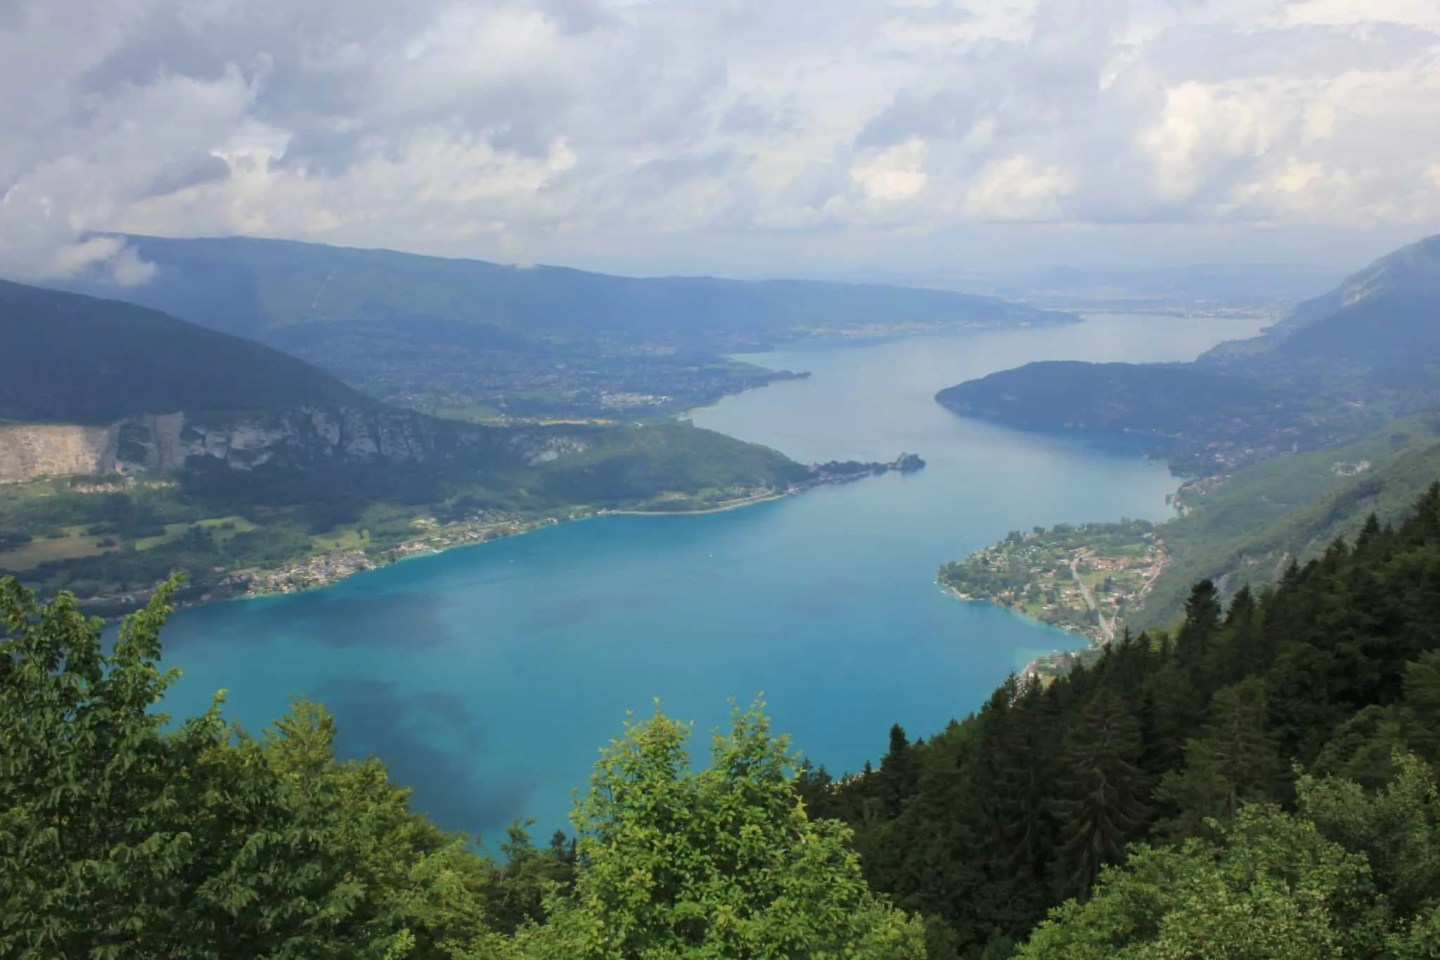 View over the lake Annecy